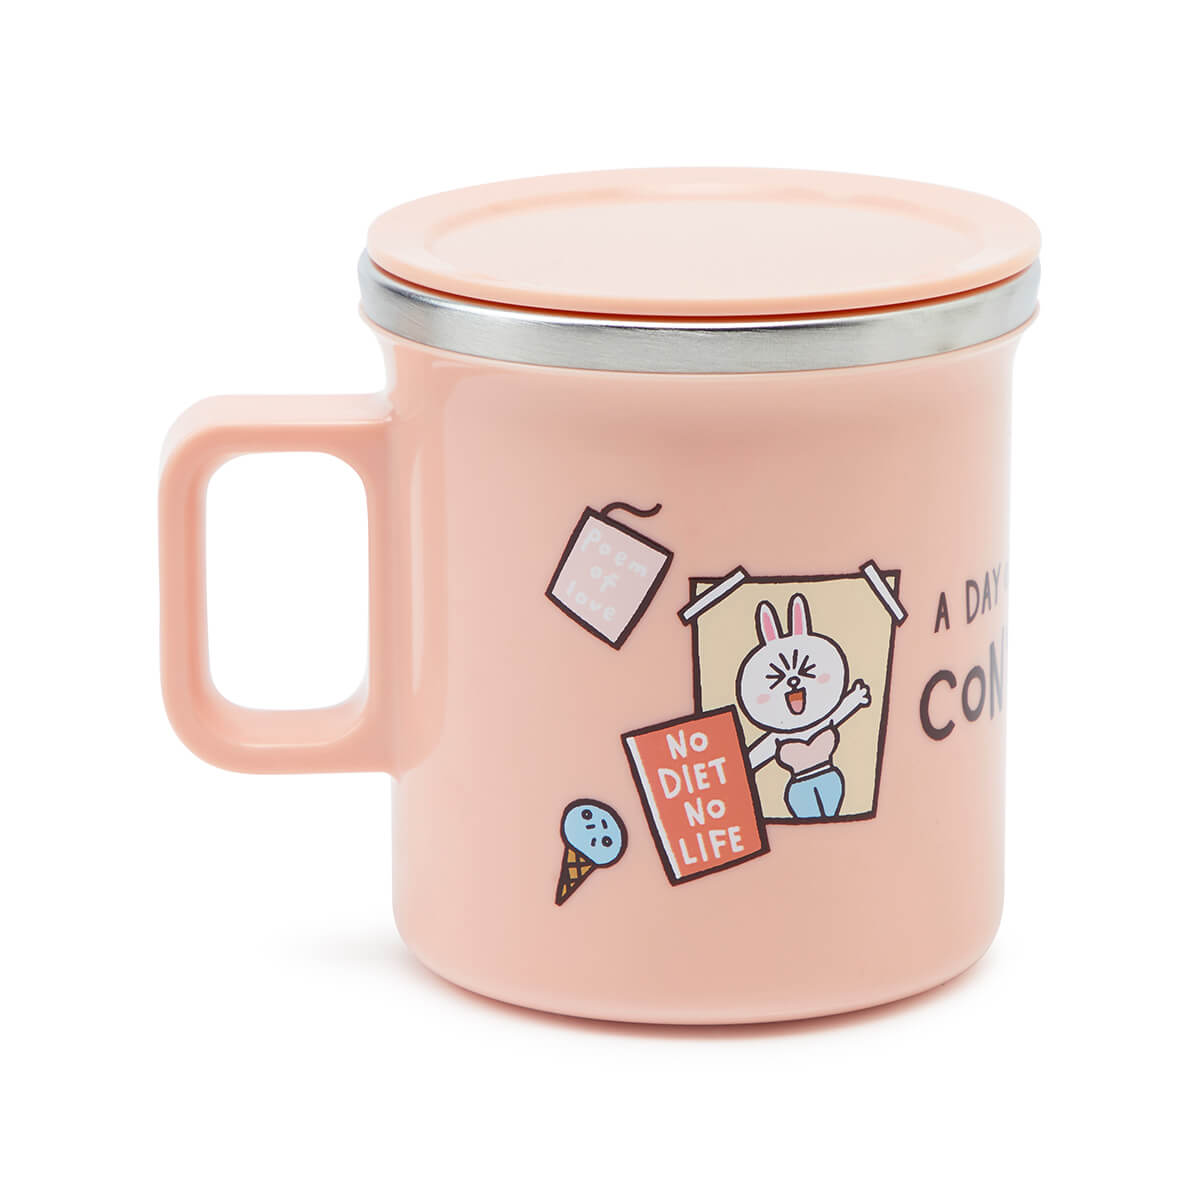 CONY Stainless Steel Mug